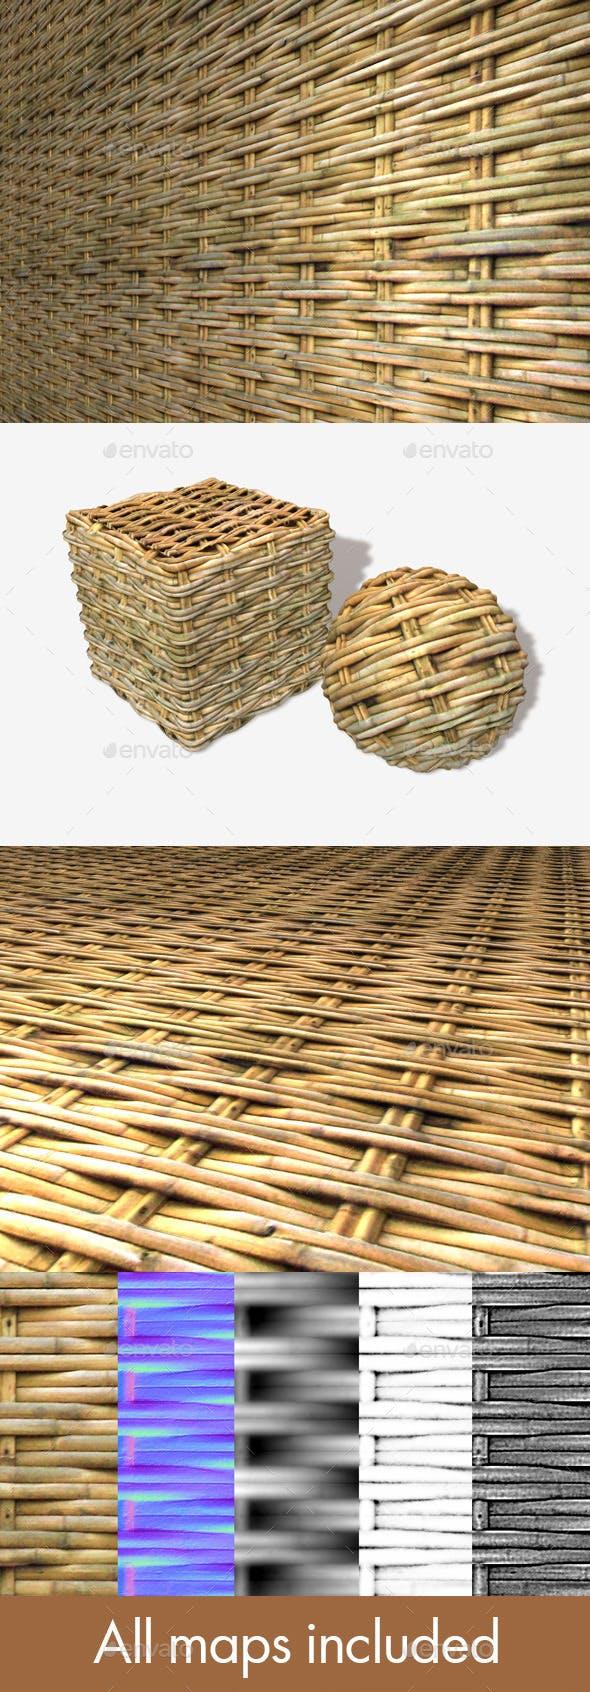 Woven Bamboo Seamless Texture - 3DOcean Item for Sale